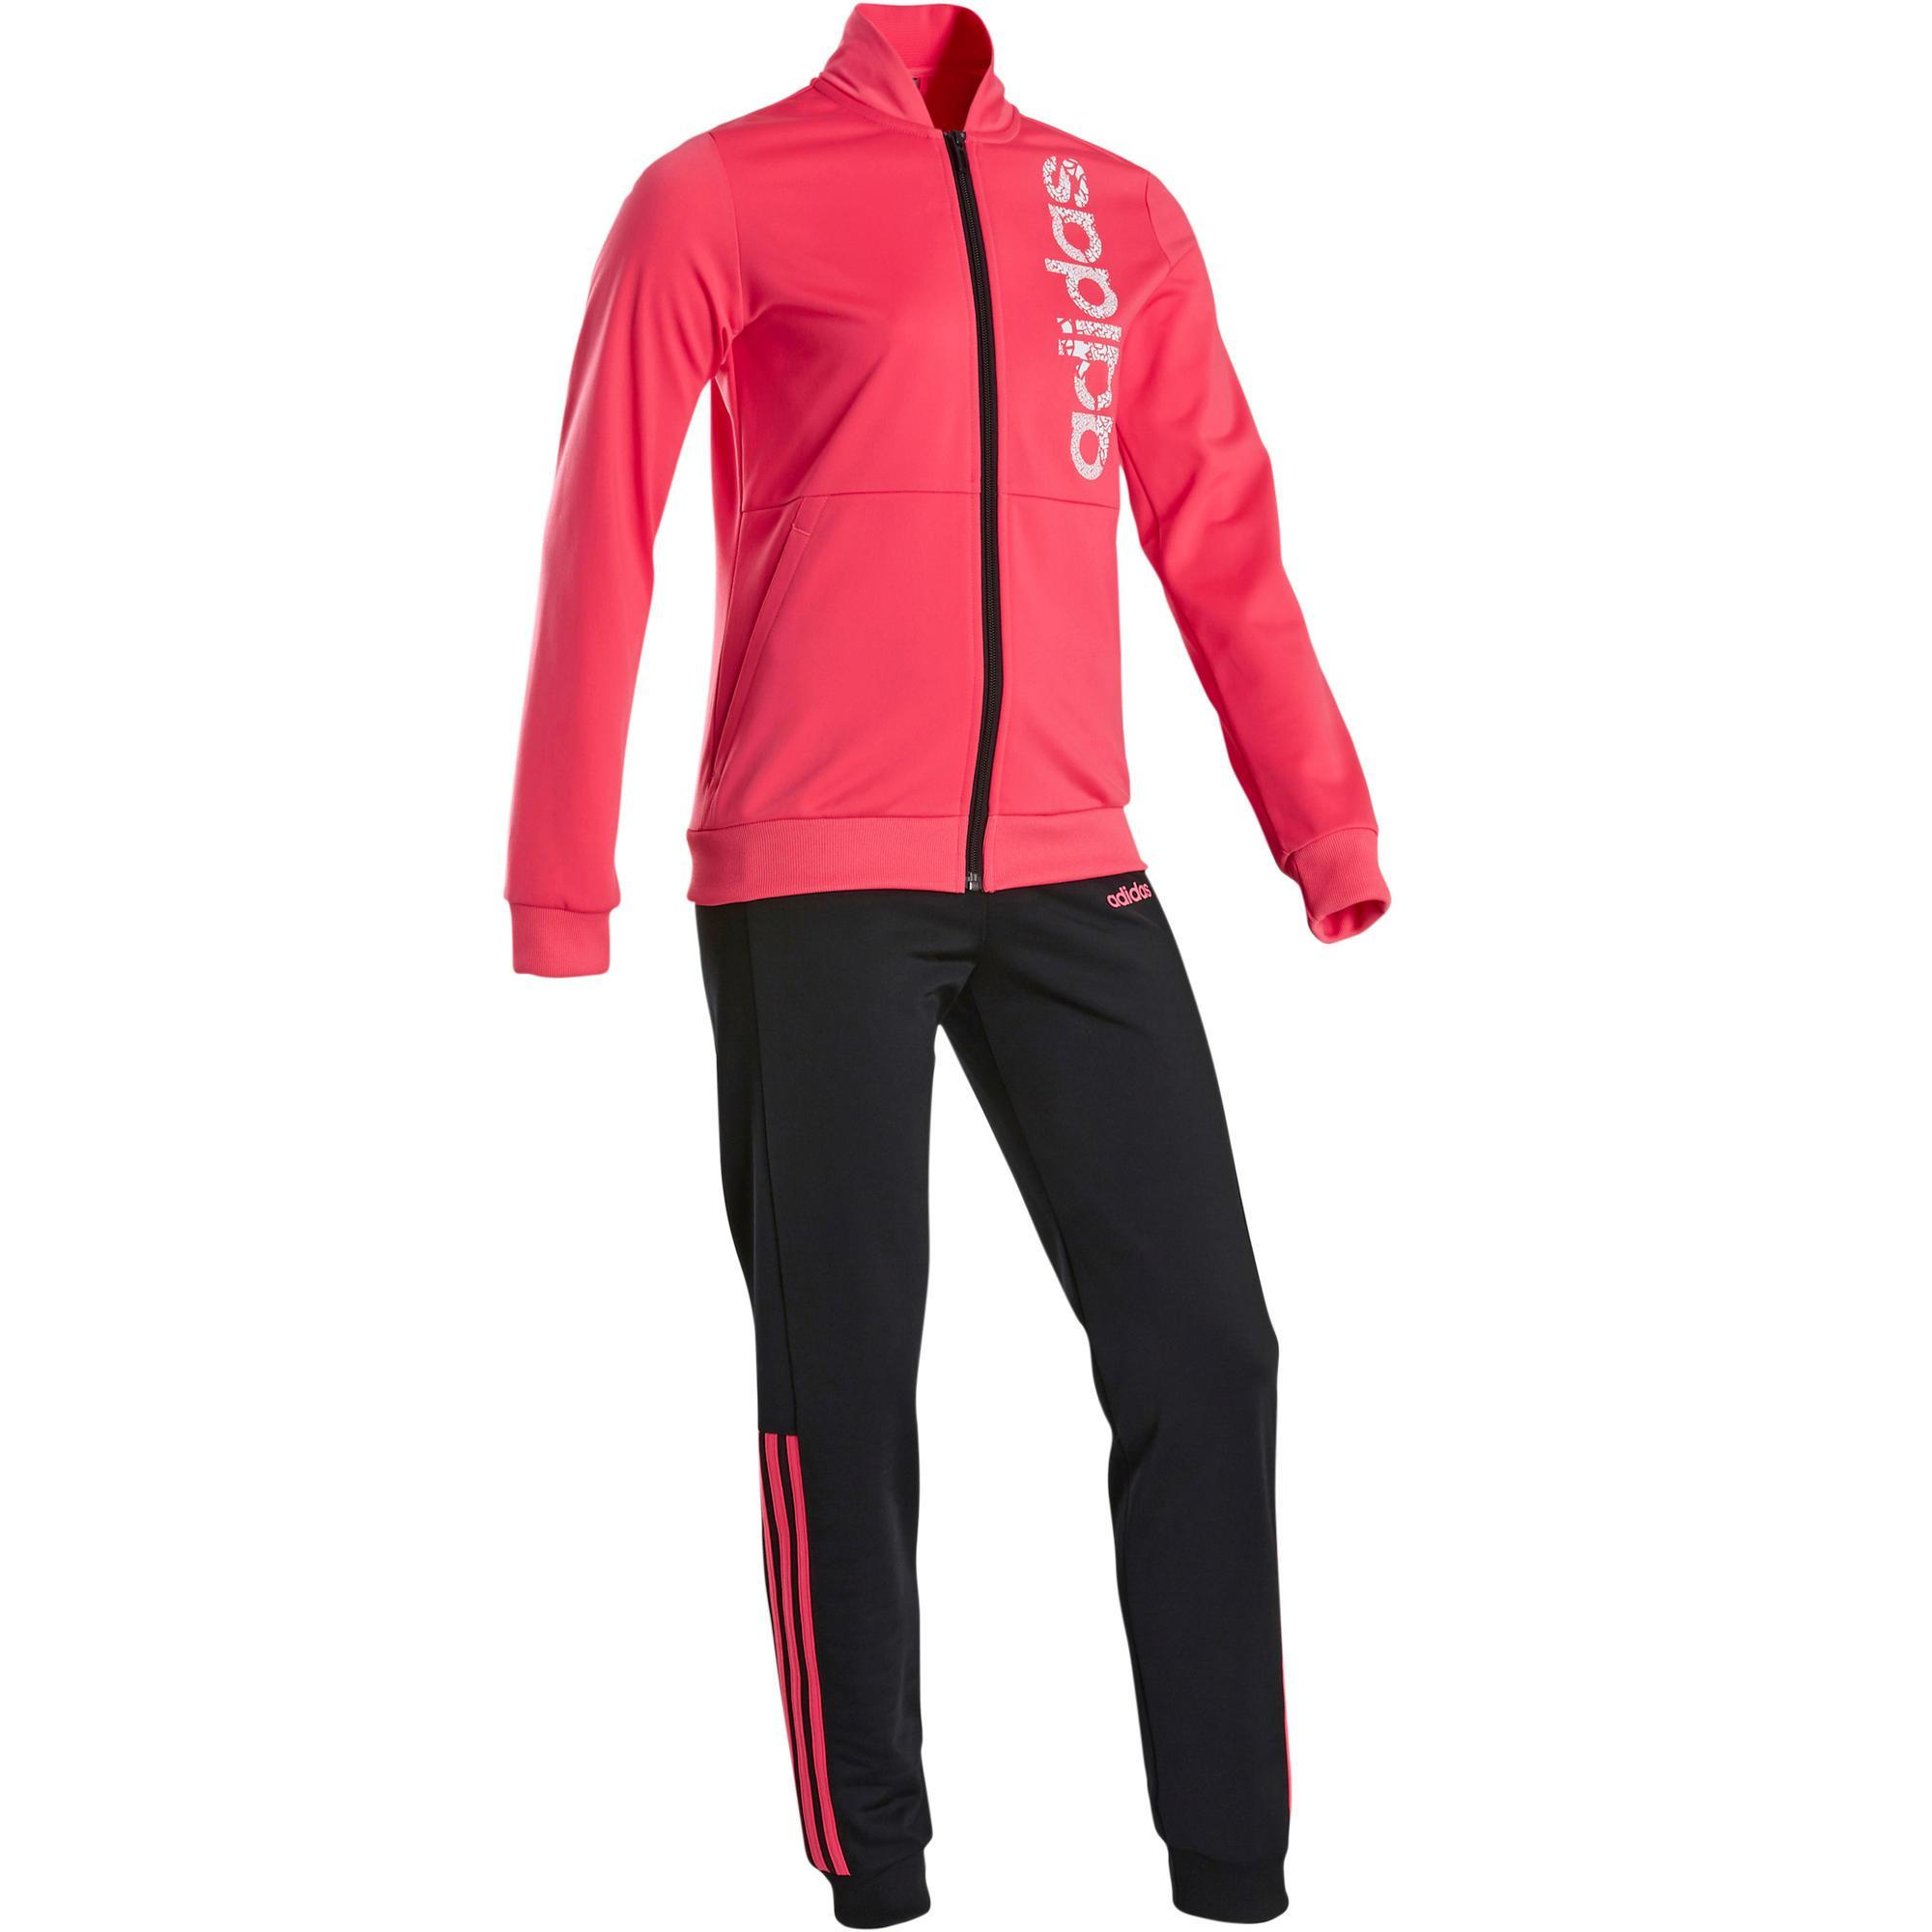 280f27f58ece Chandal Adidas - Decathlon